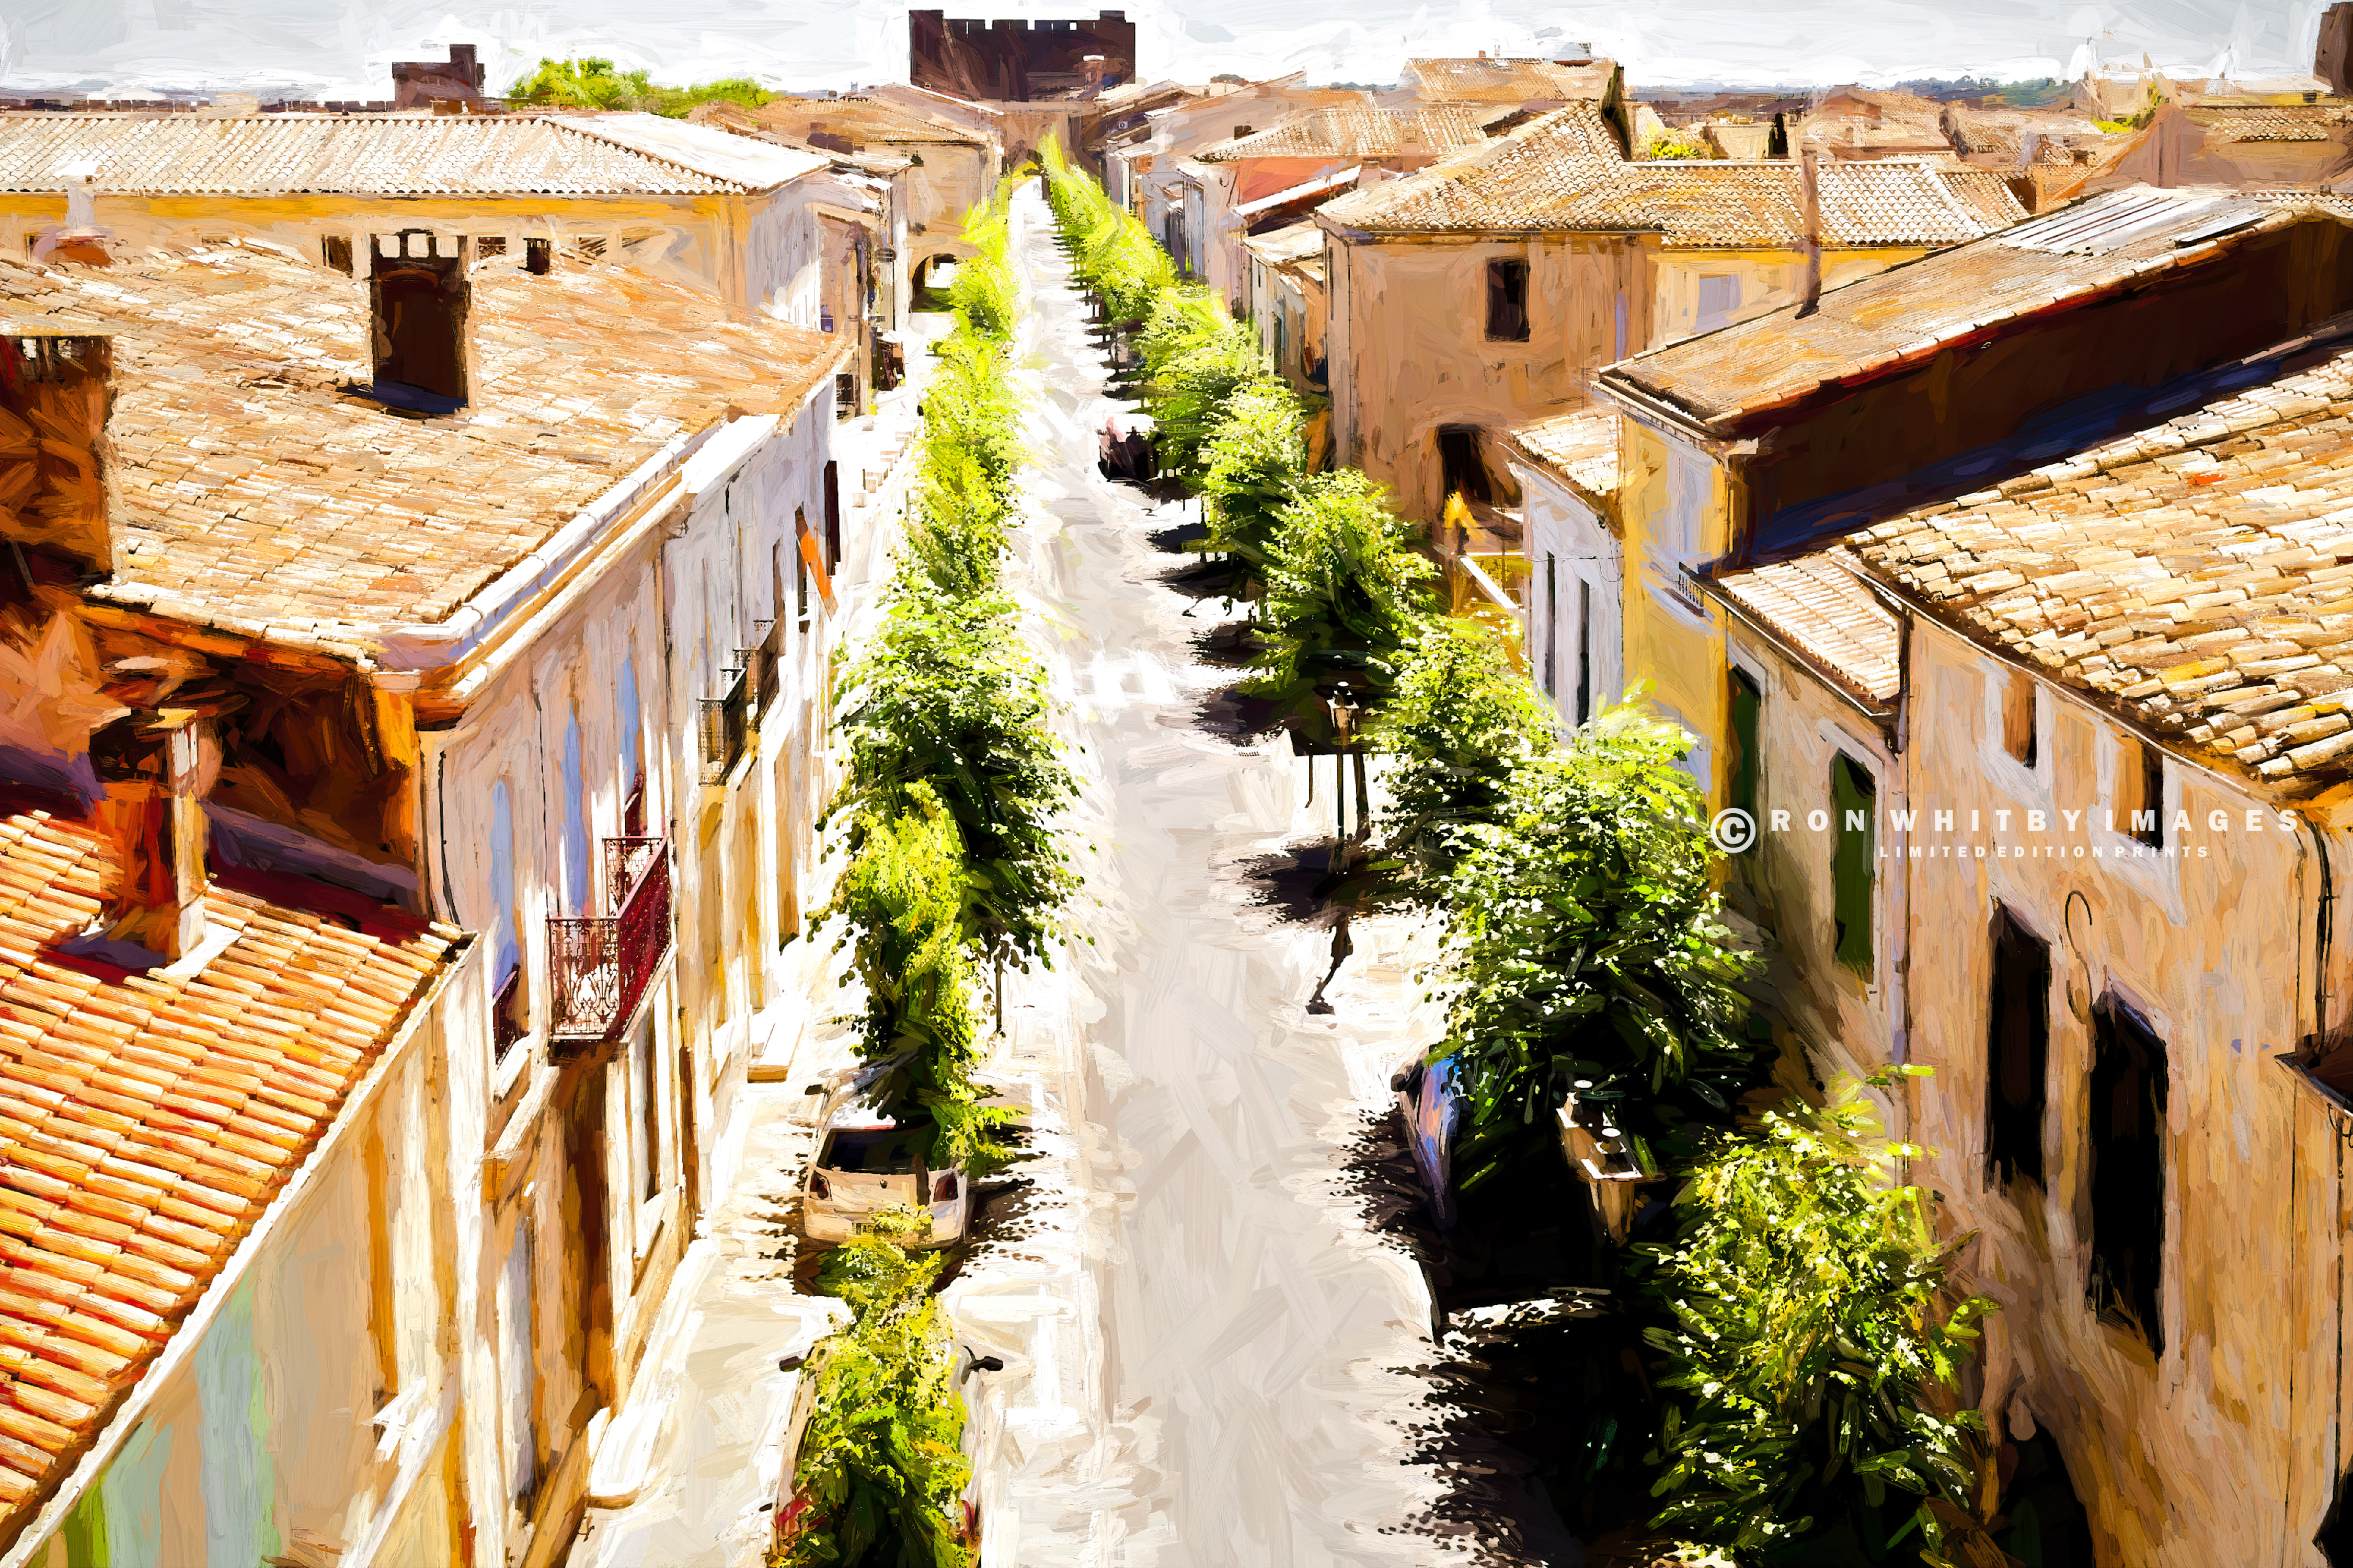 10054 Street in Aigues Mortes